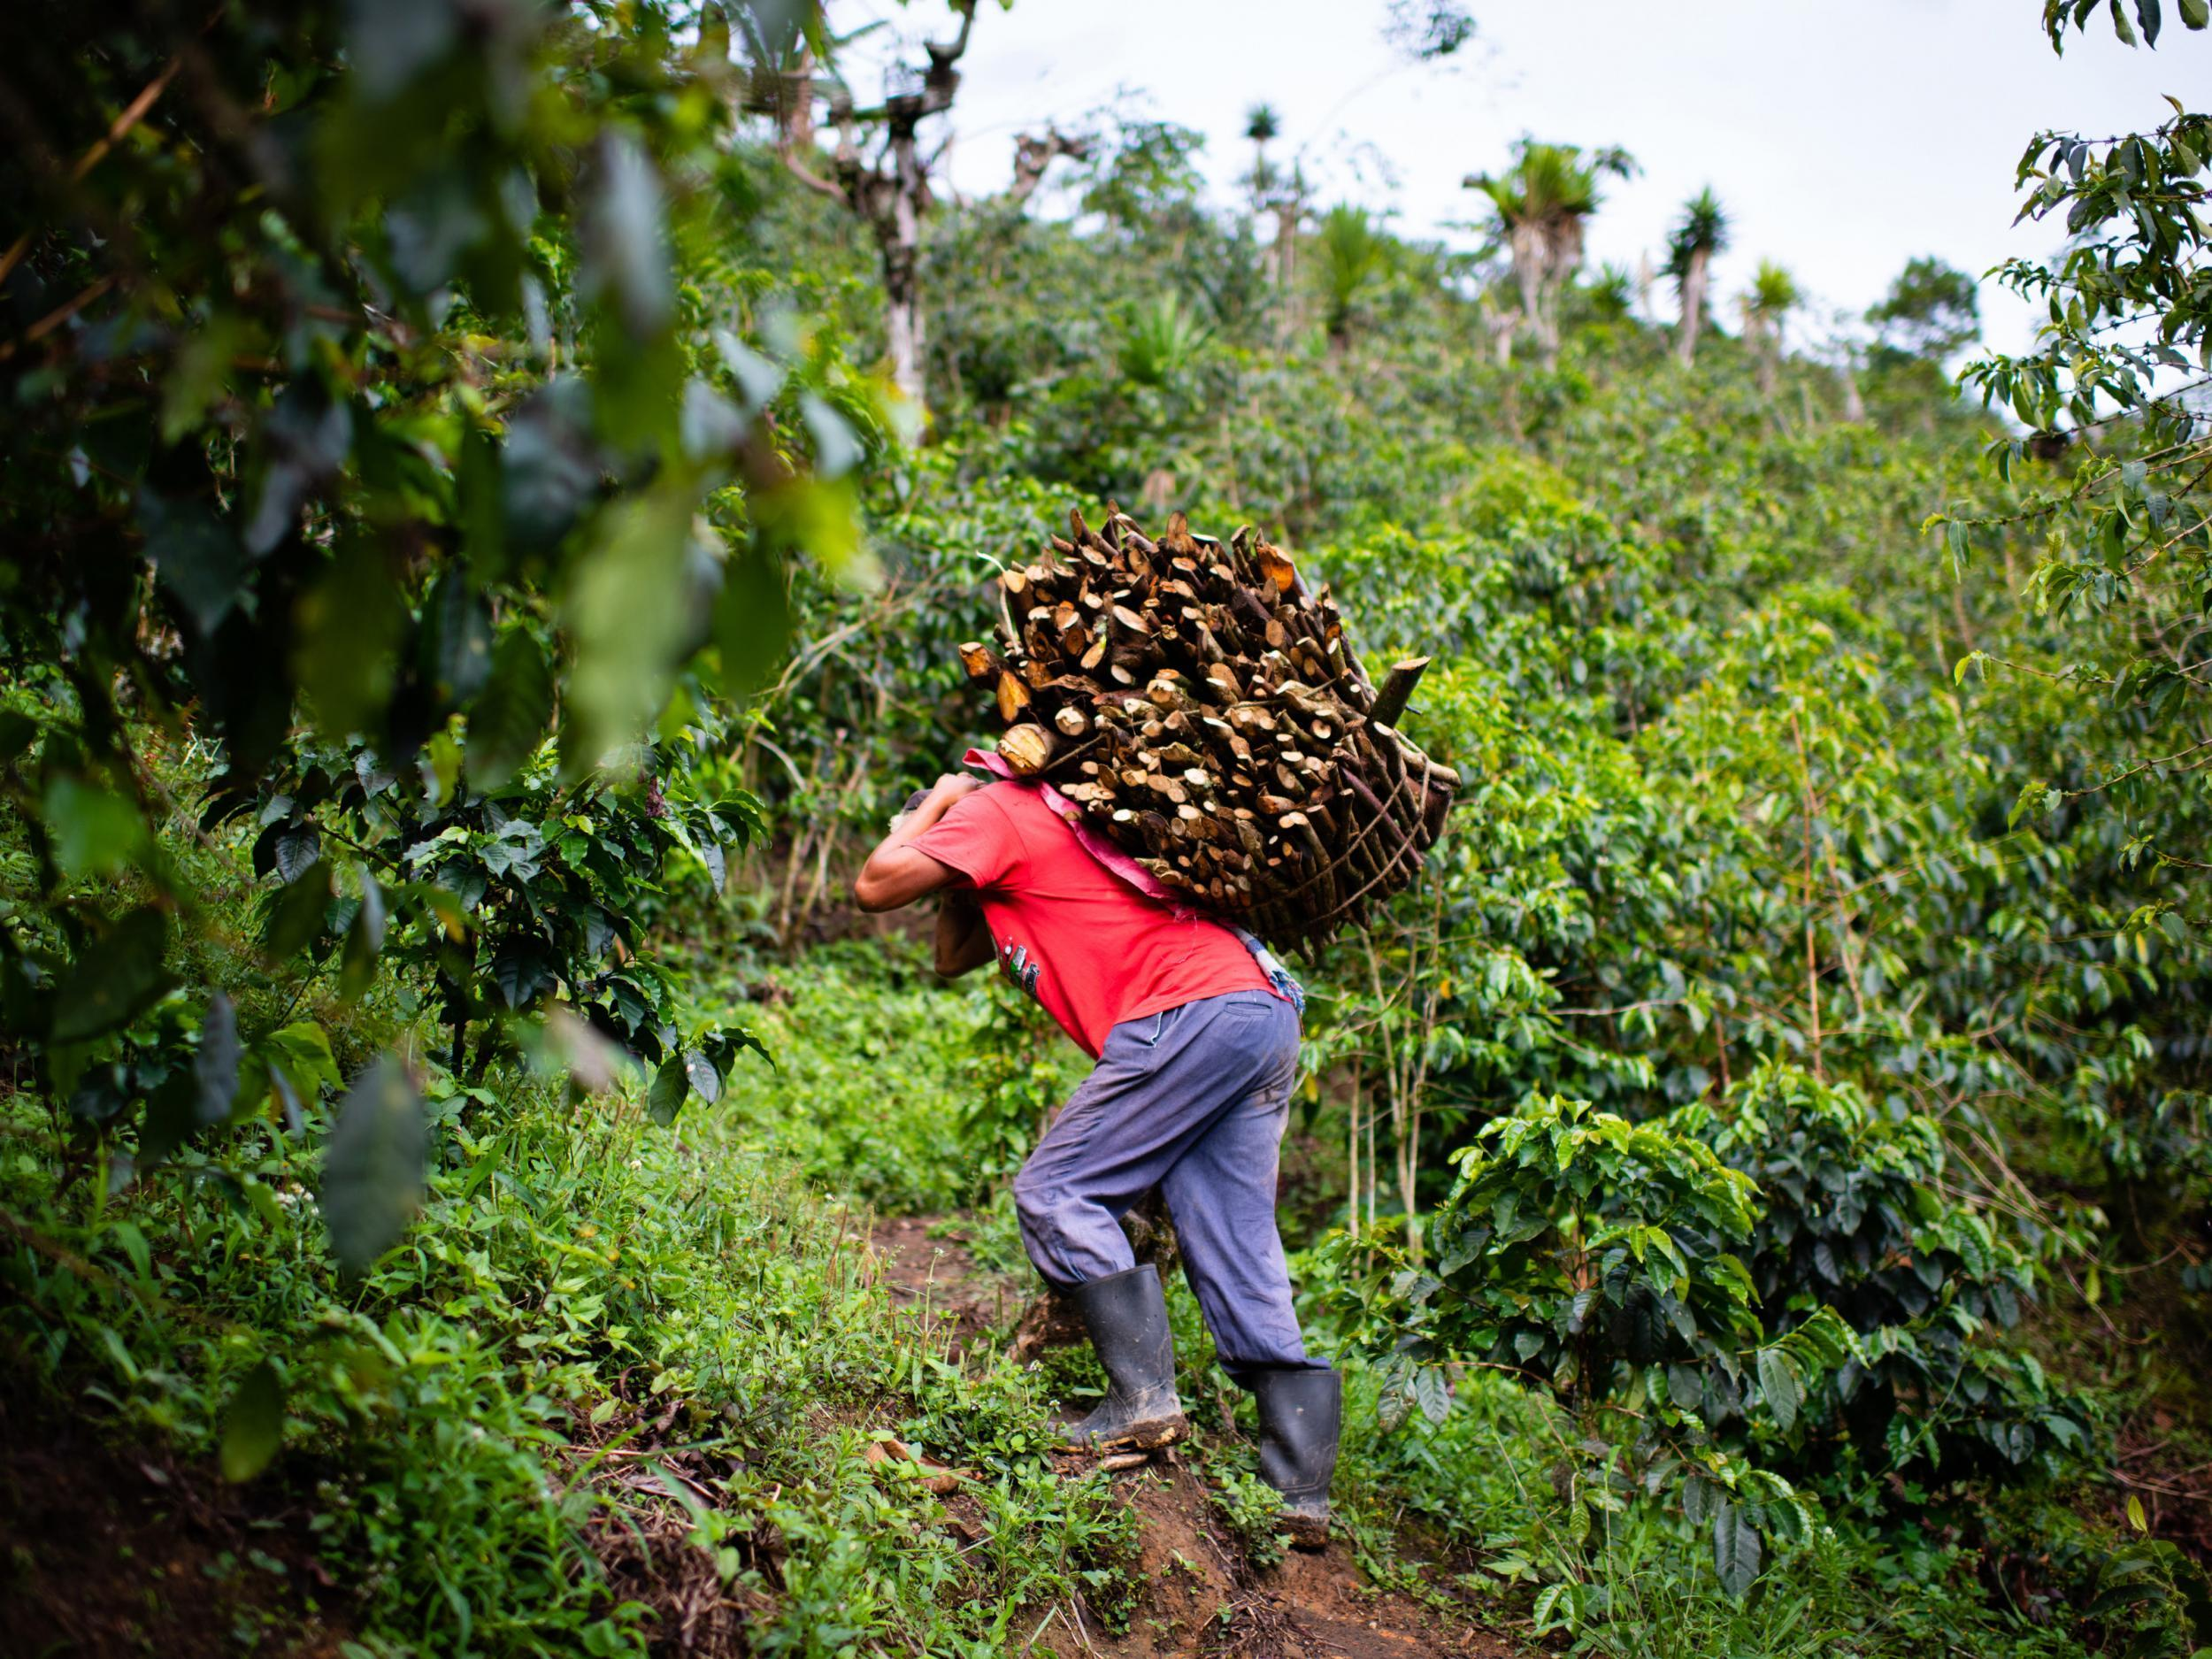 COFFEE CULTIVATION IN GUATEMALA LABORERS PICKING HARVESTING COFFEE PLANTATION